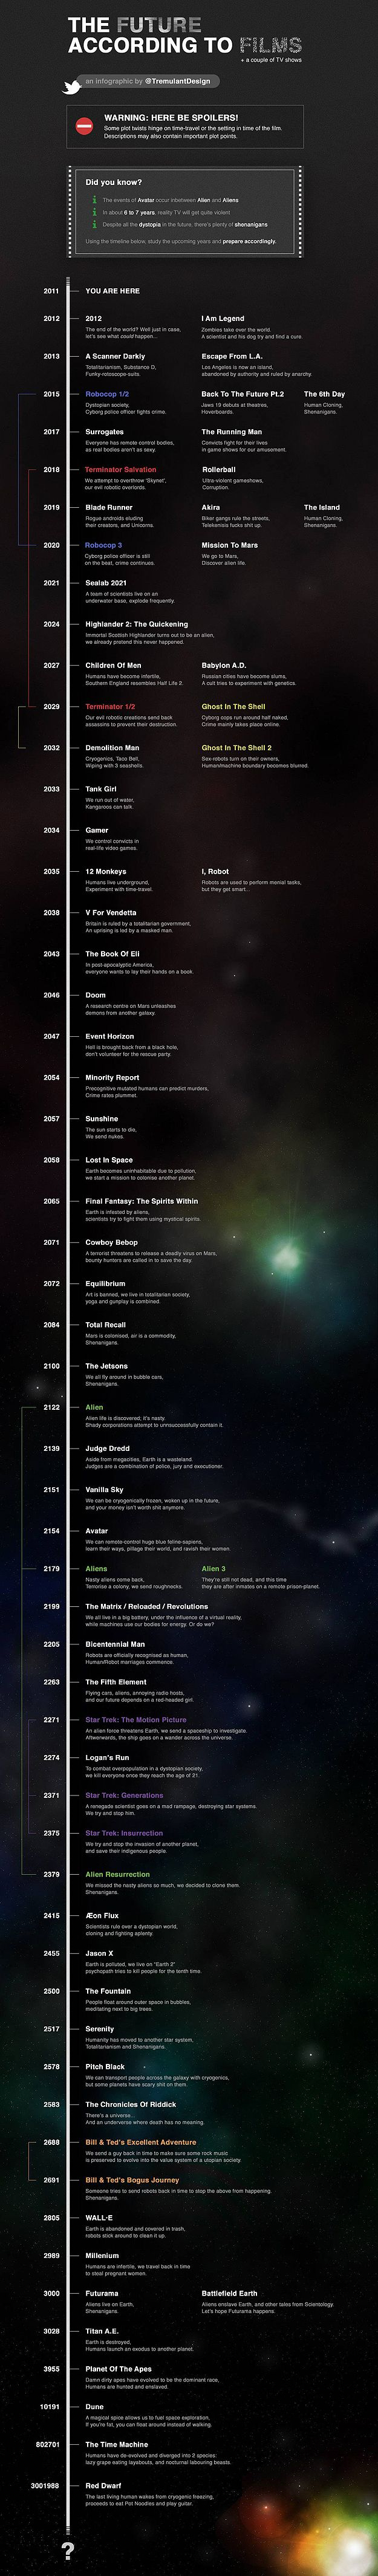 Future According To Sci Fi Films Infographic